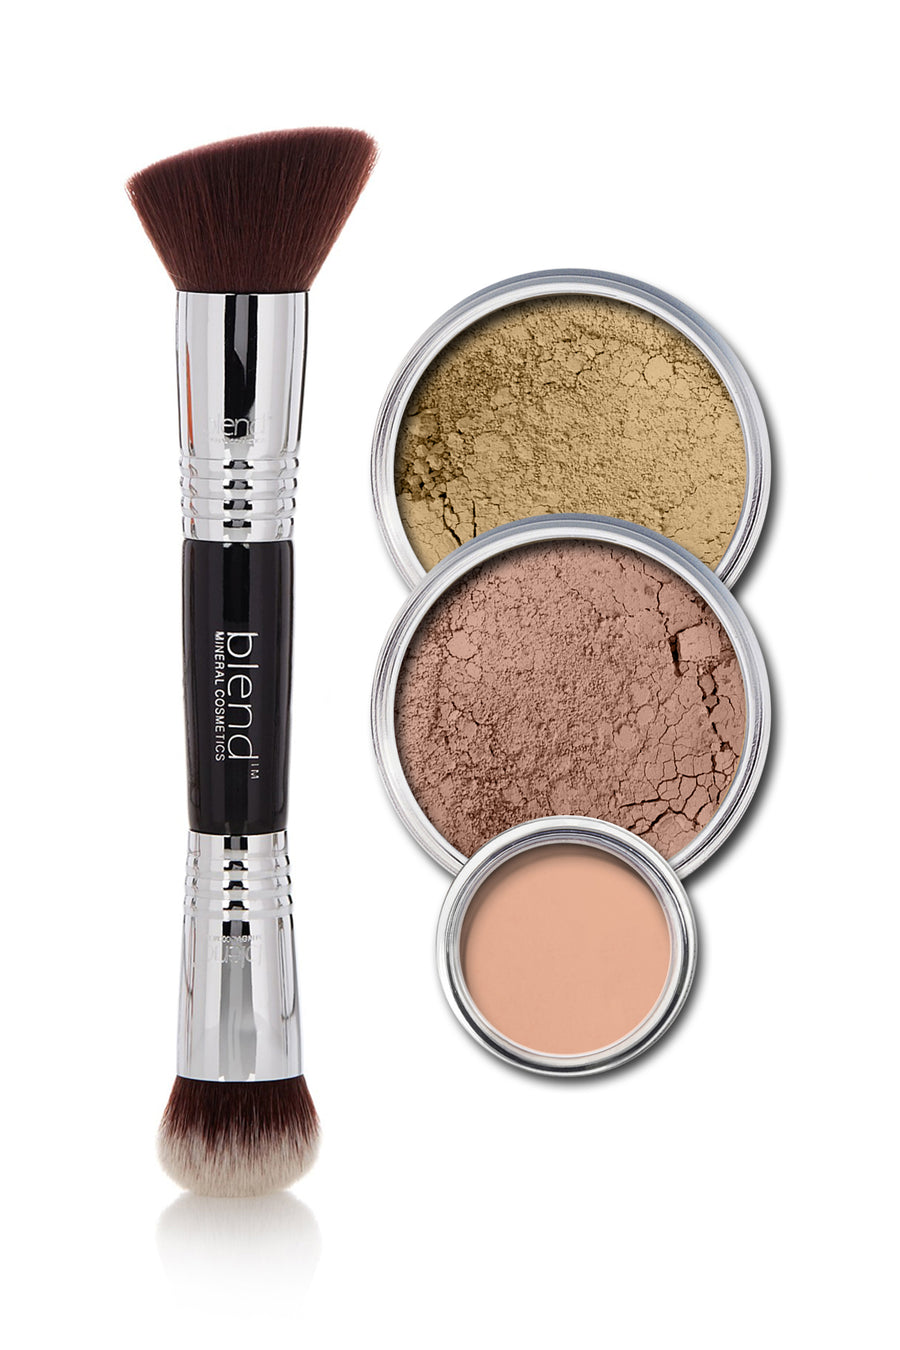 Starter Kit - Tan - Blend Mineral Cosmetics